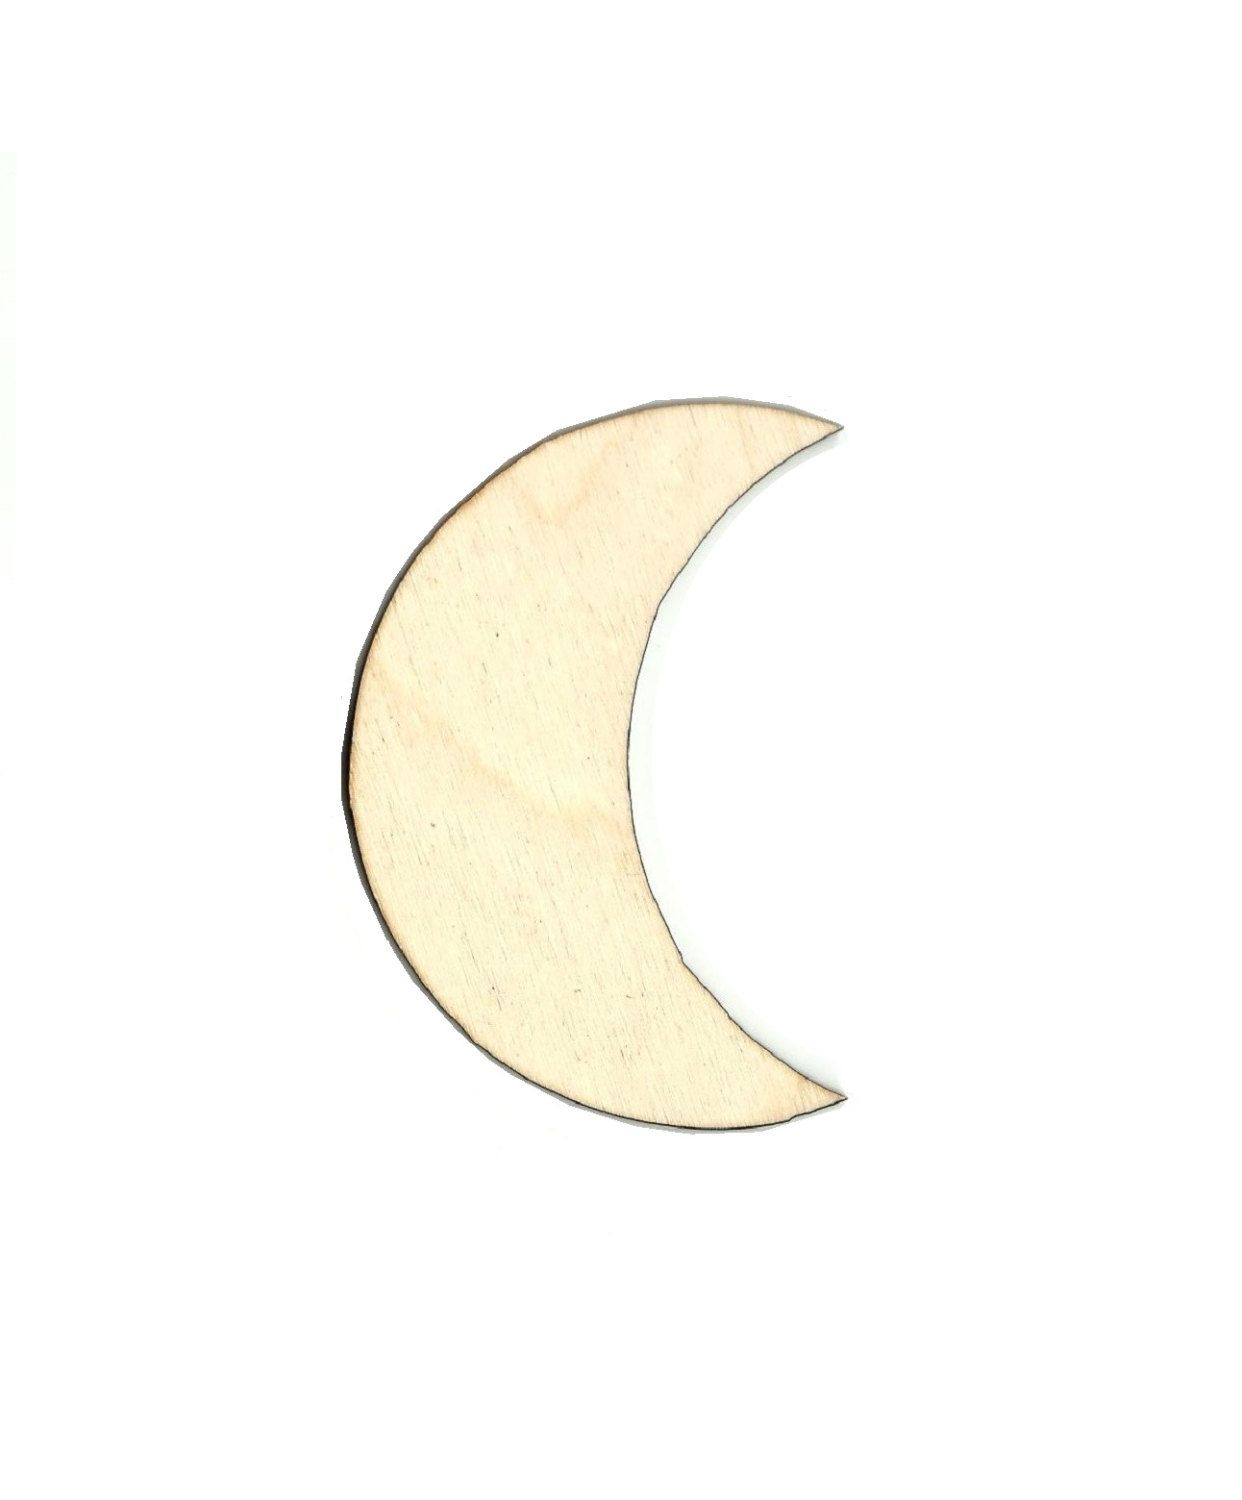 Unfinished wood craft pieces - Moon Laser Cut Out Unfinished Wood Shape Craft Supply Sky43